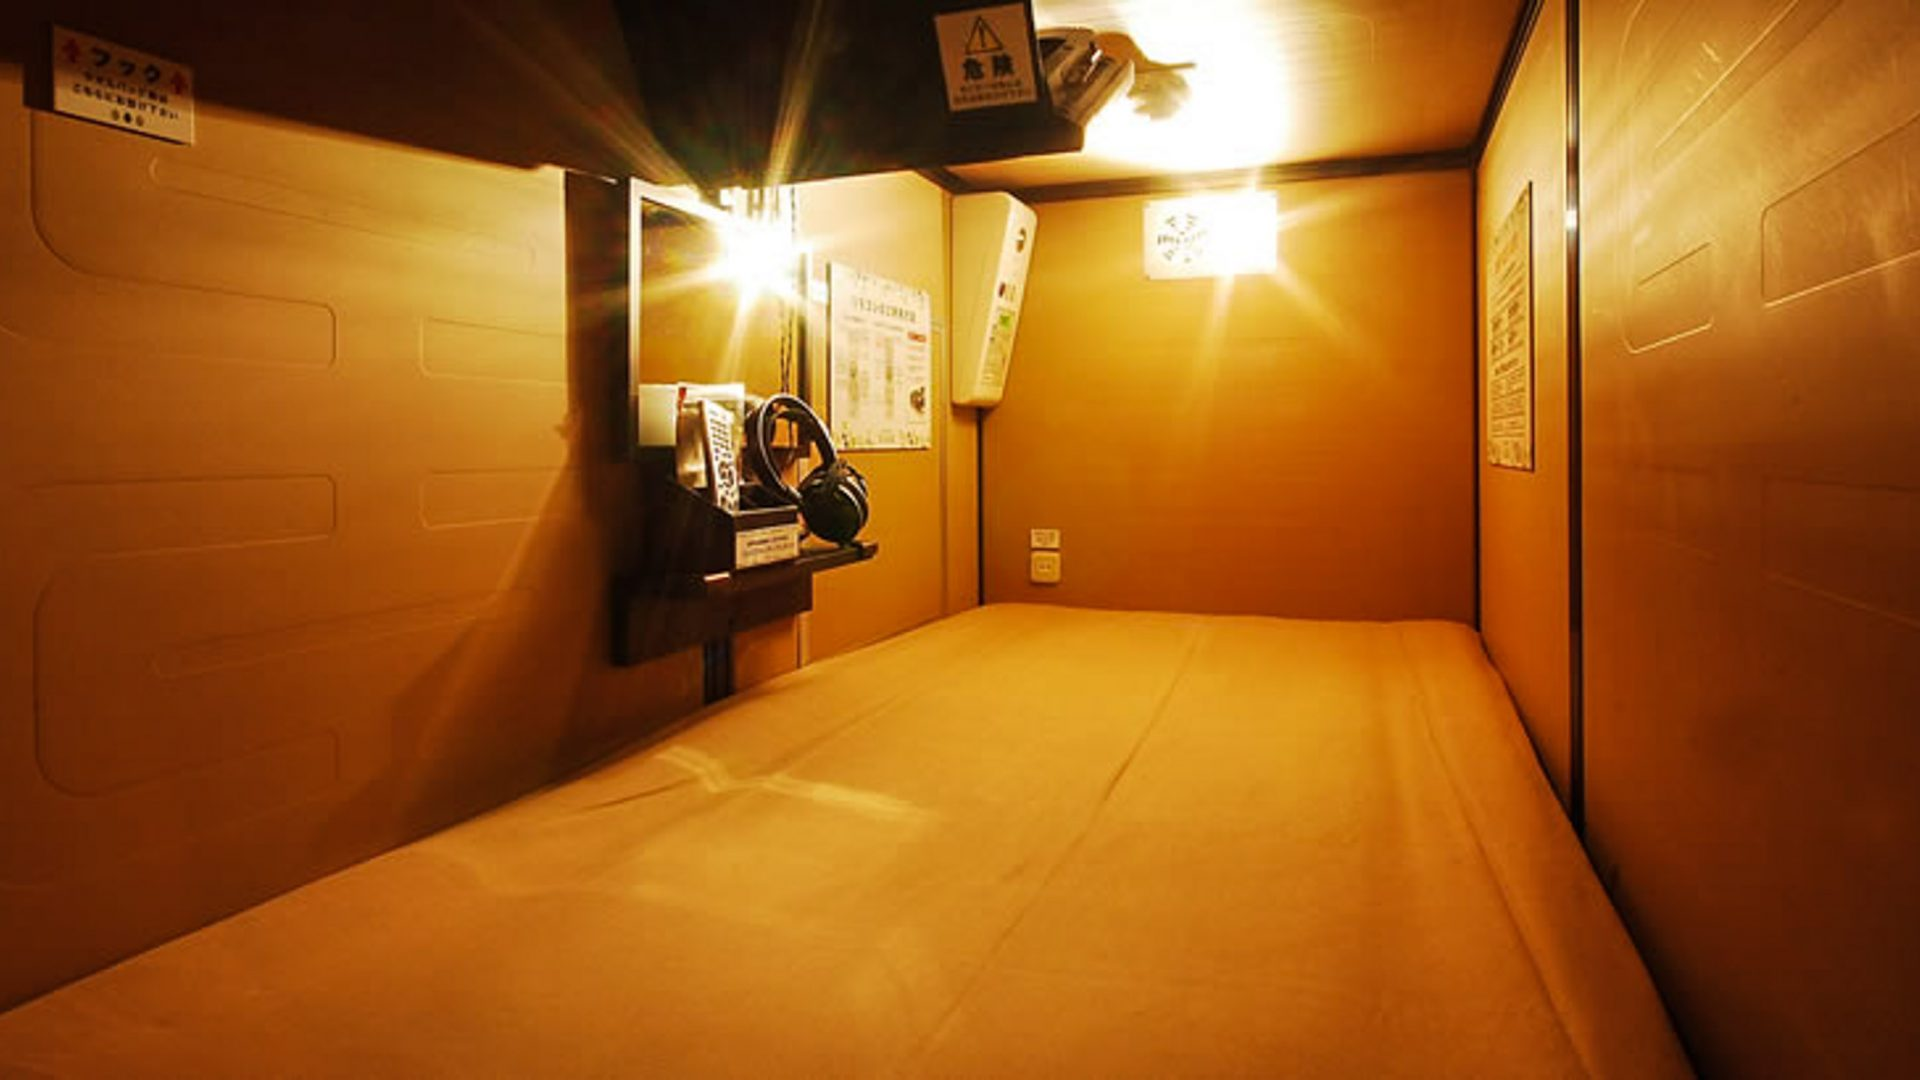 Inside Tokyo's capsule hotels: The interior of one of the capsule rooms at Anshin Oyado.